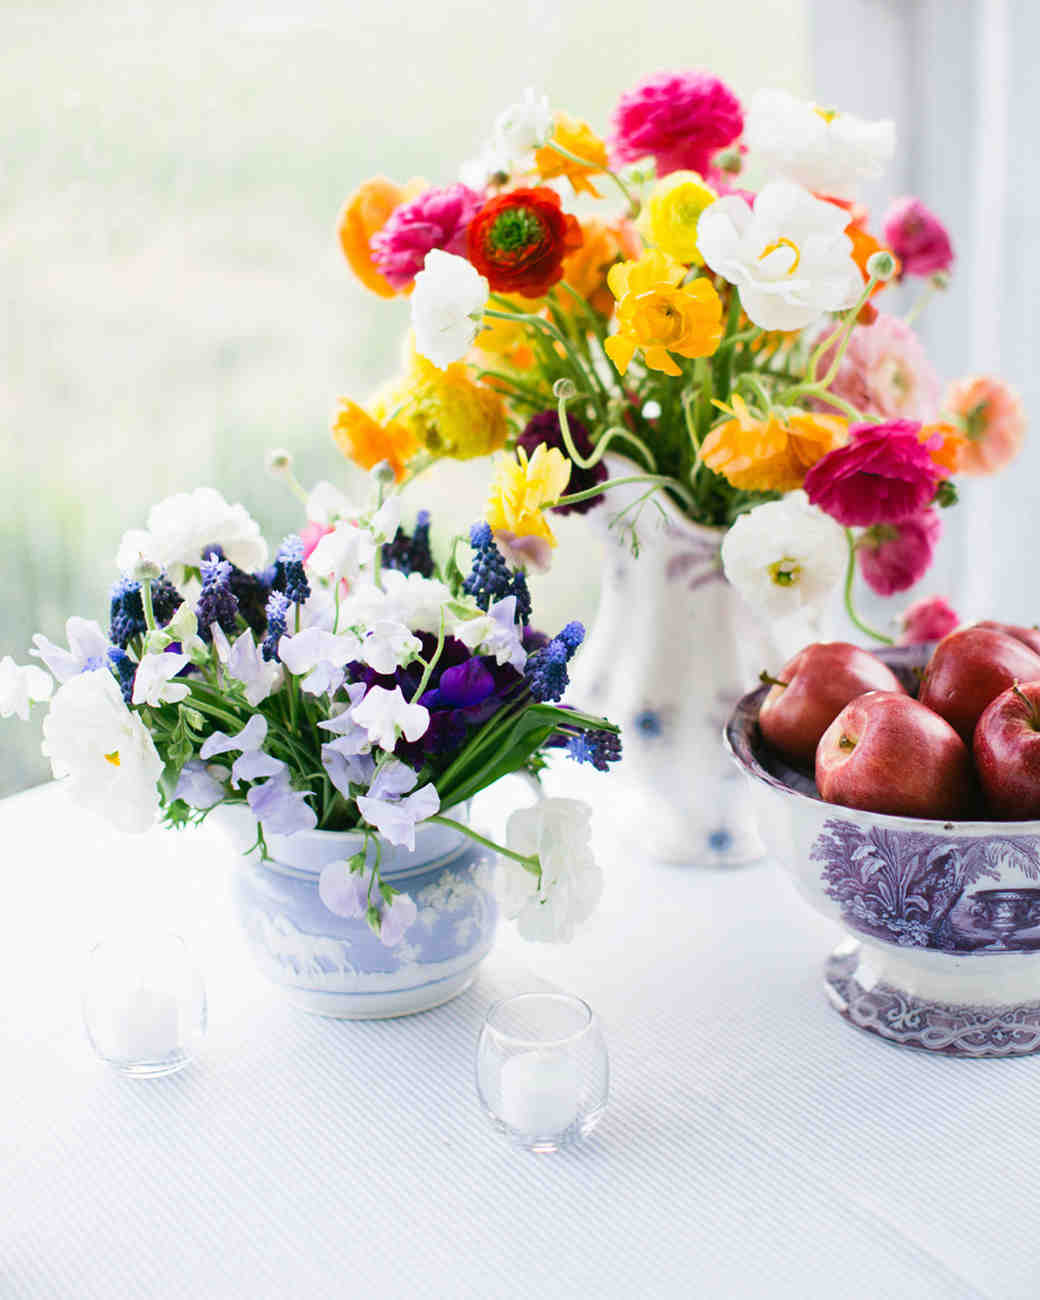 Wedding Flower Center Pieces: 36 Simple Wedding Centerpieces